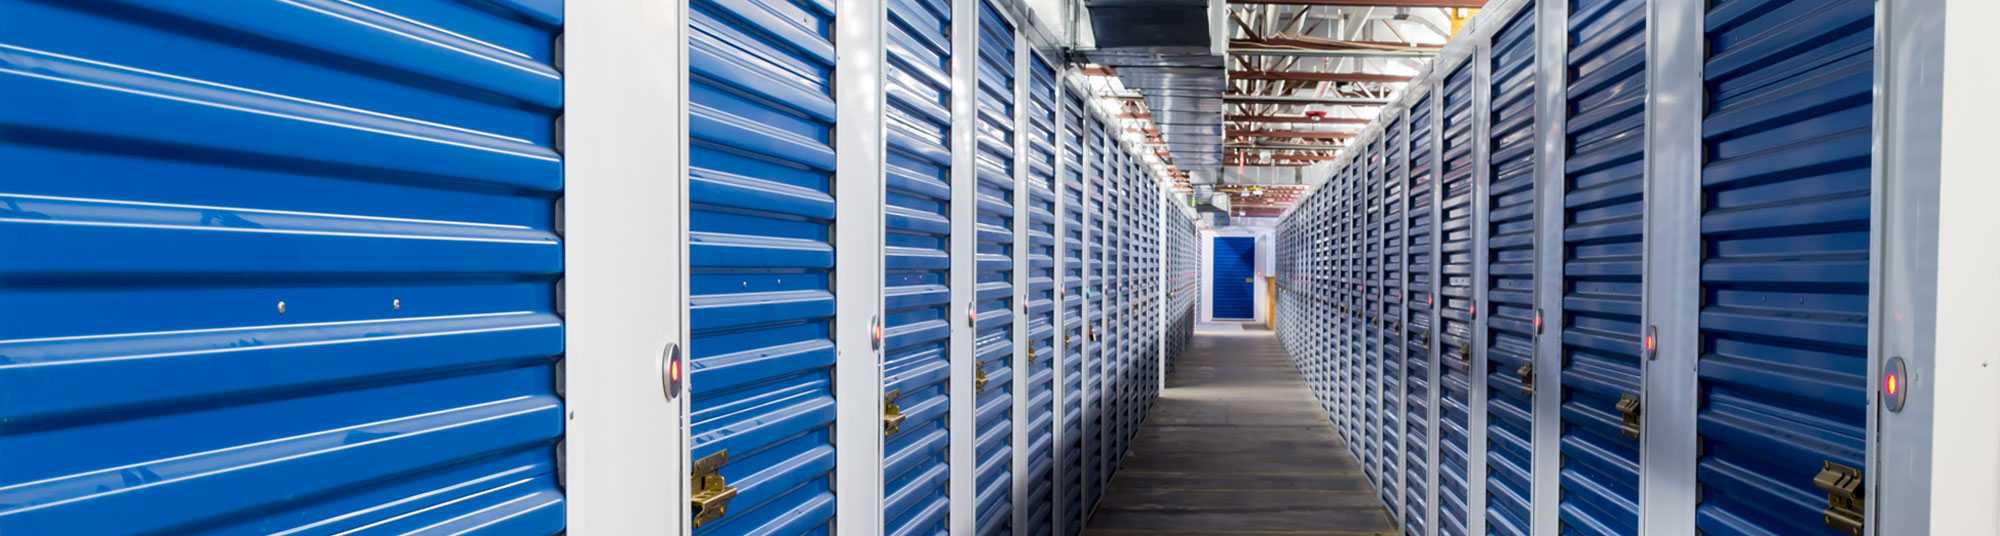 Hallway with self storage doors equipped with Noke Smart Entry system locks